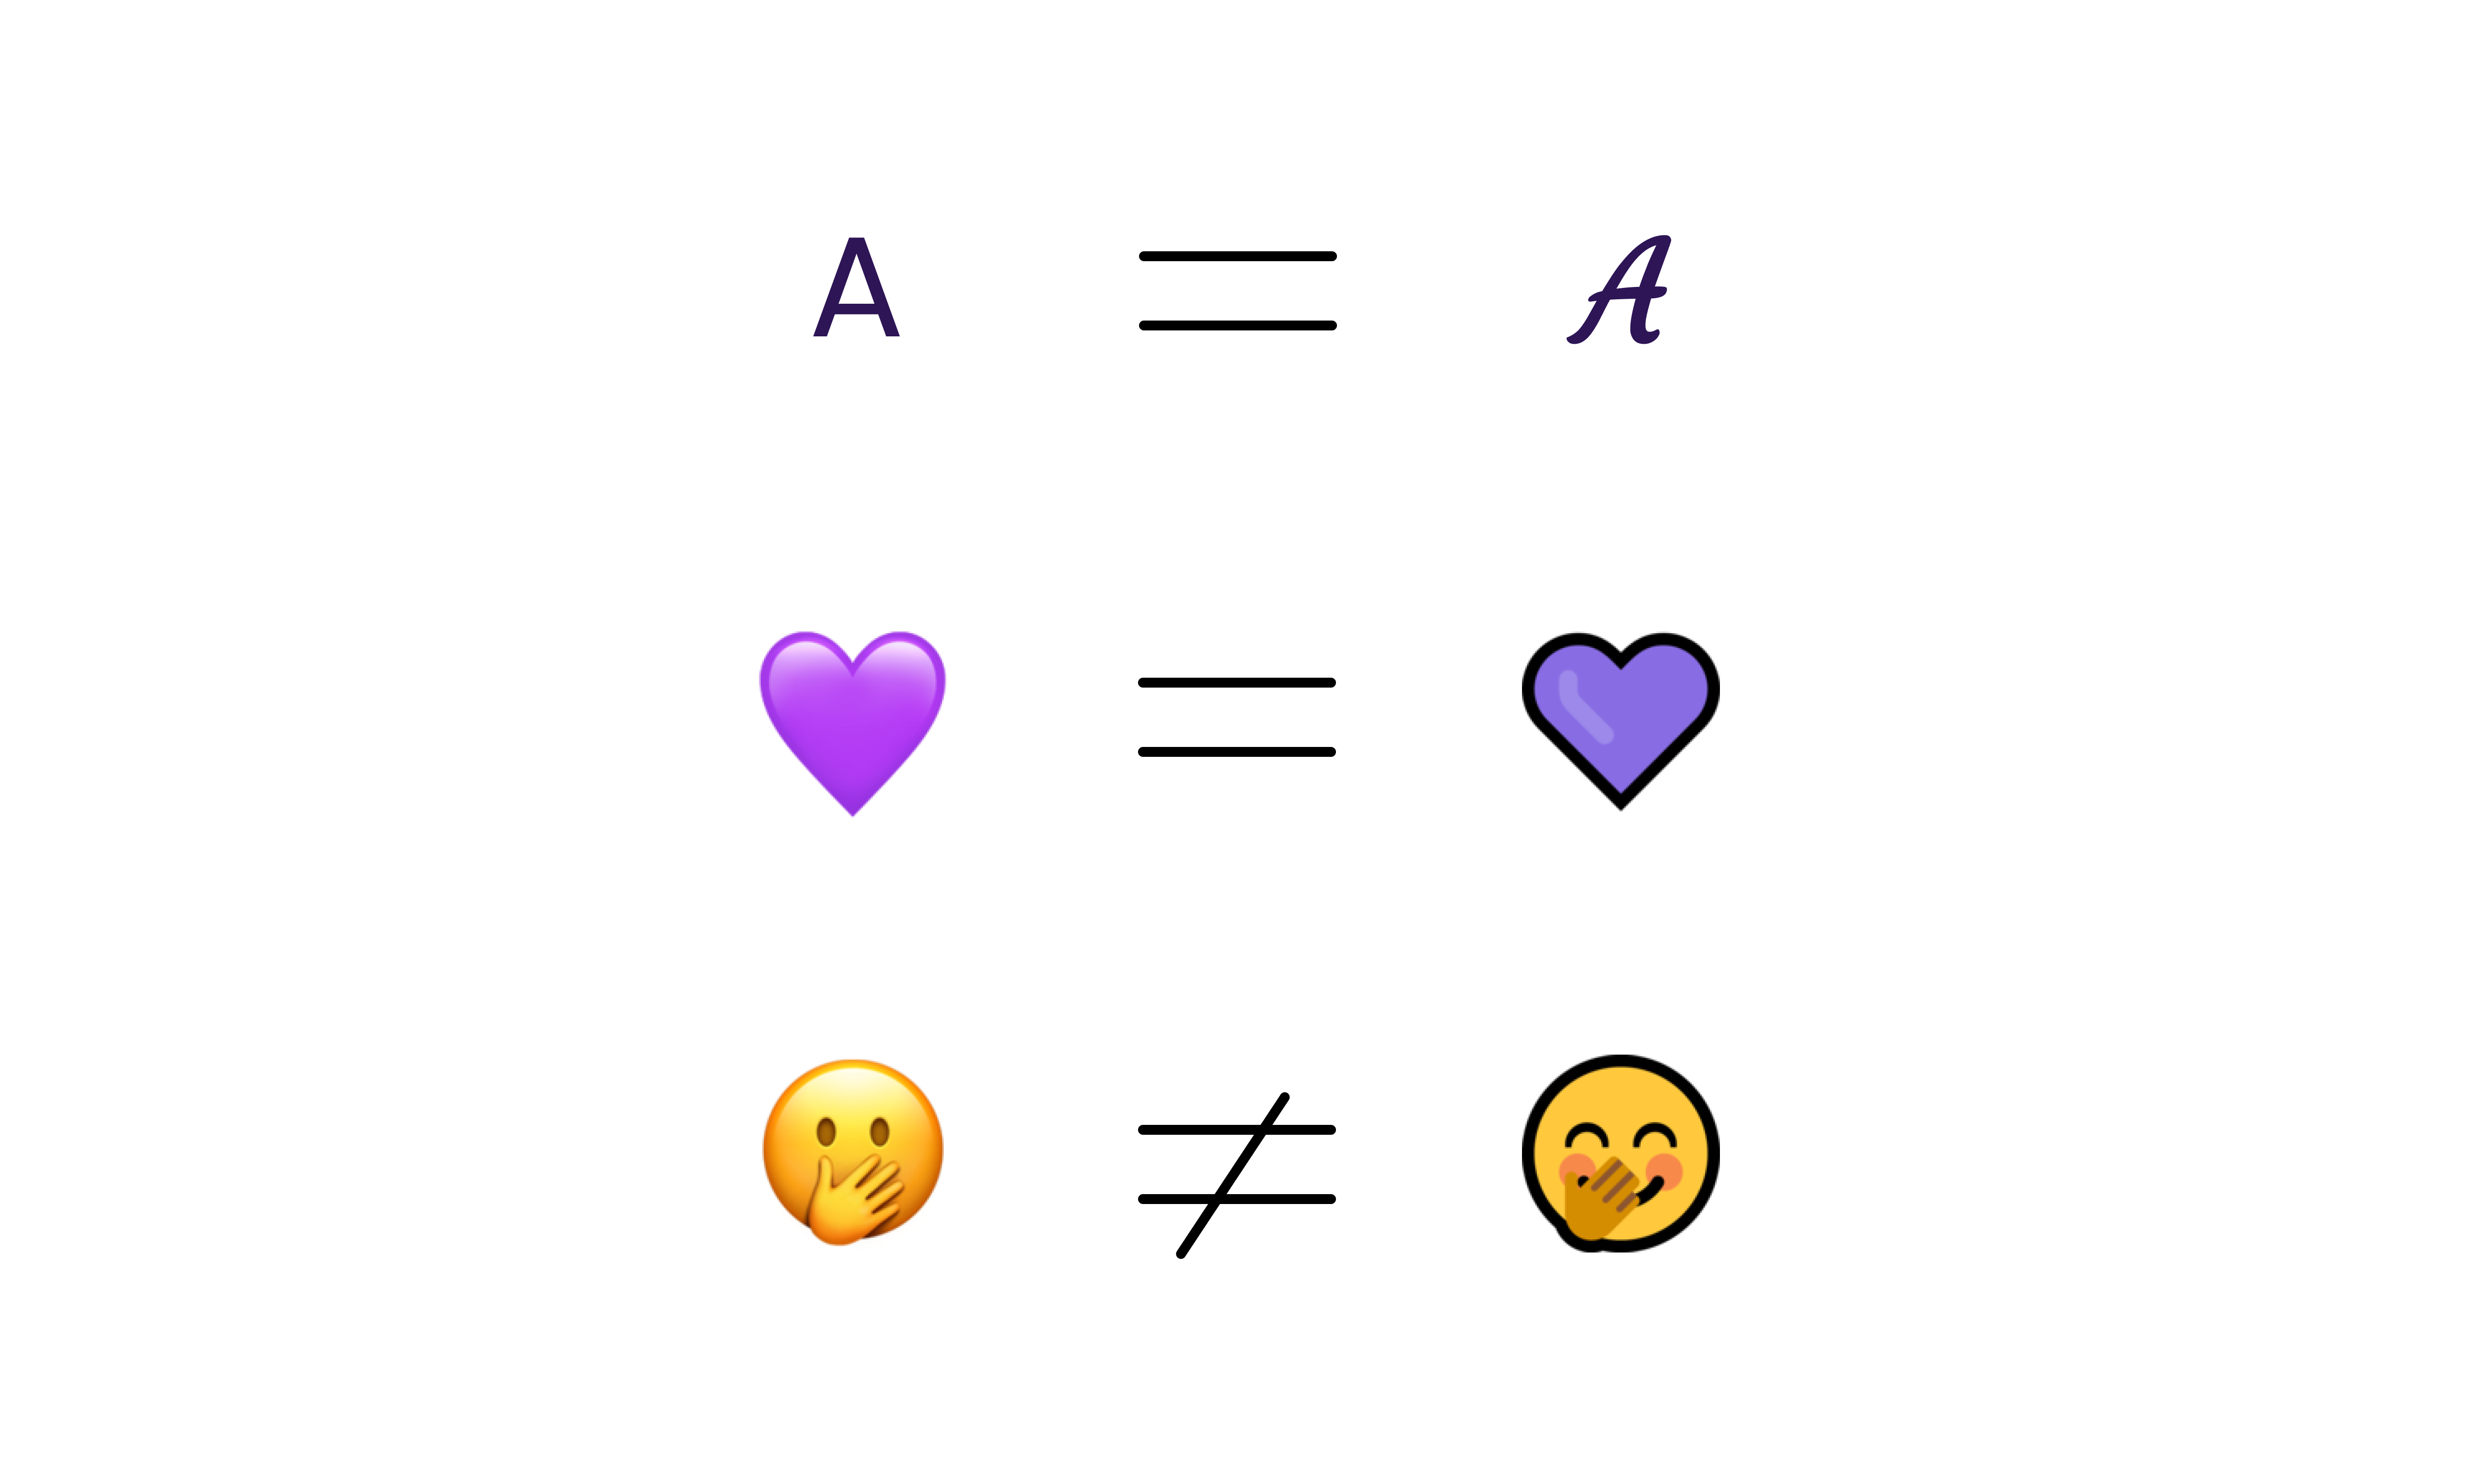 3 comparisons: between 2 capital A, with an equal sign between them ; between 2 purple heart emojis, with an equal sign between them ; between 2 face with hand over mouth emoji, with an unequal sign between them